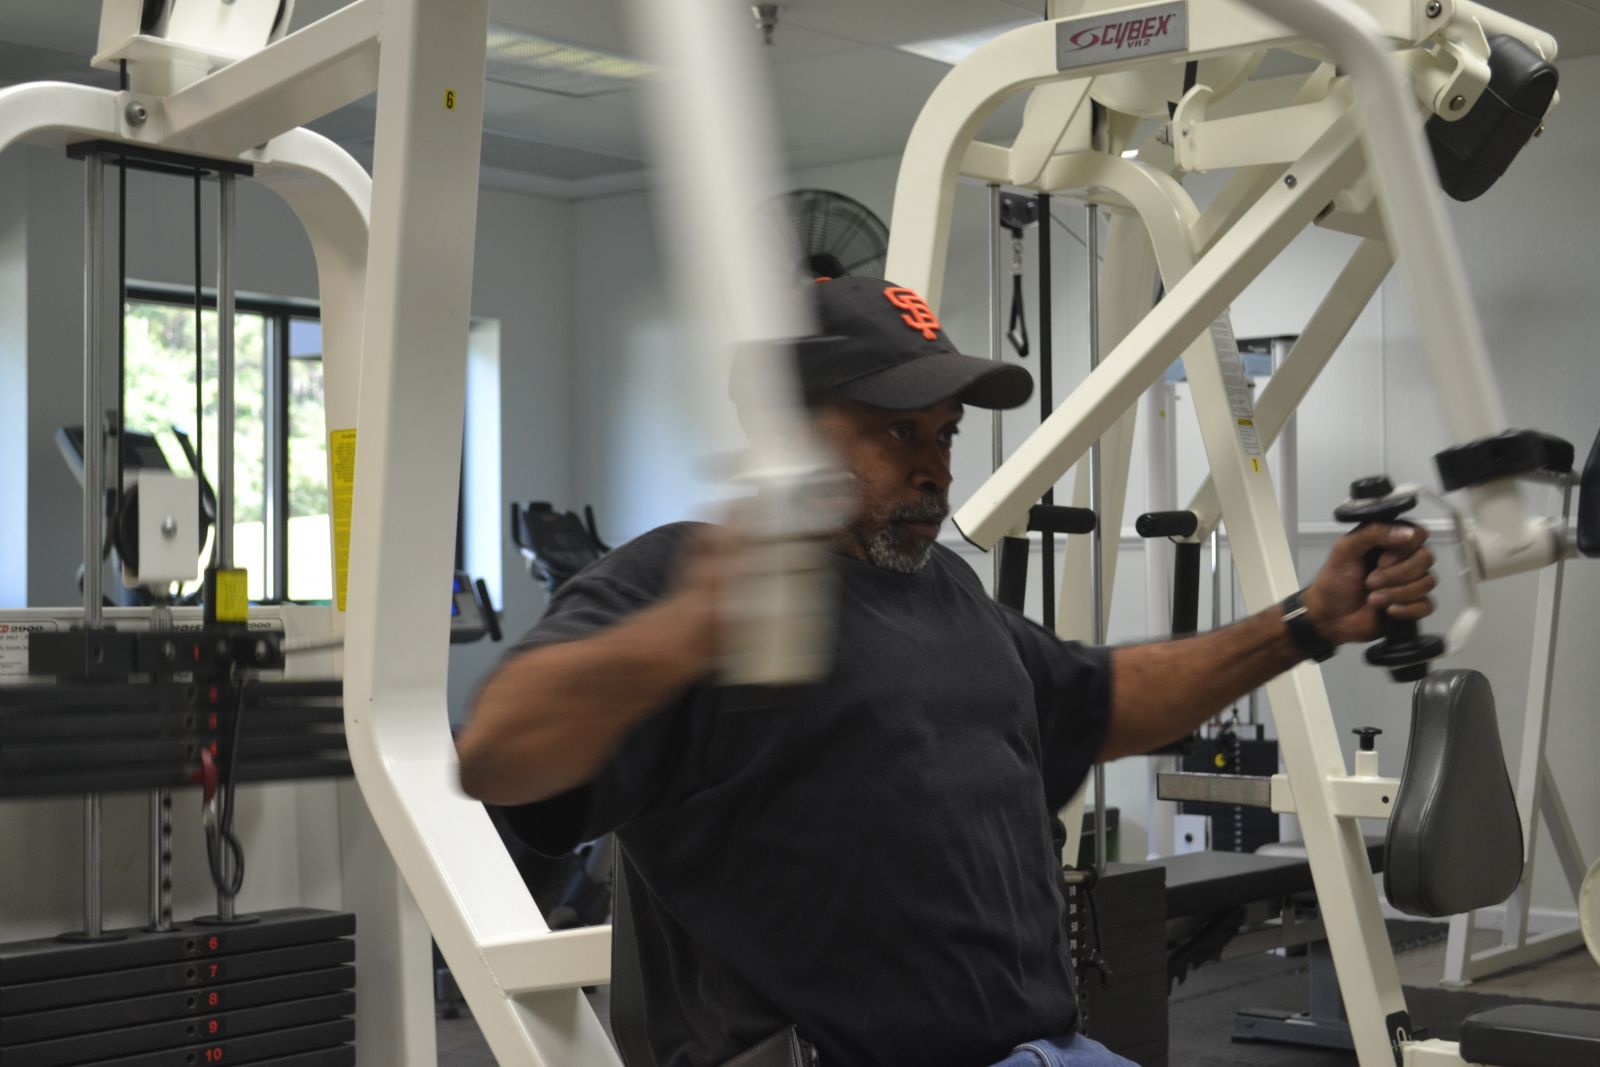 Glen Raven employee Bernard White likes to use the on-site gym at work. He also participates in cycling and basketball. (Photo by Teresa Cutlip)